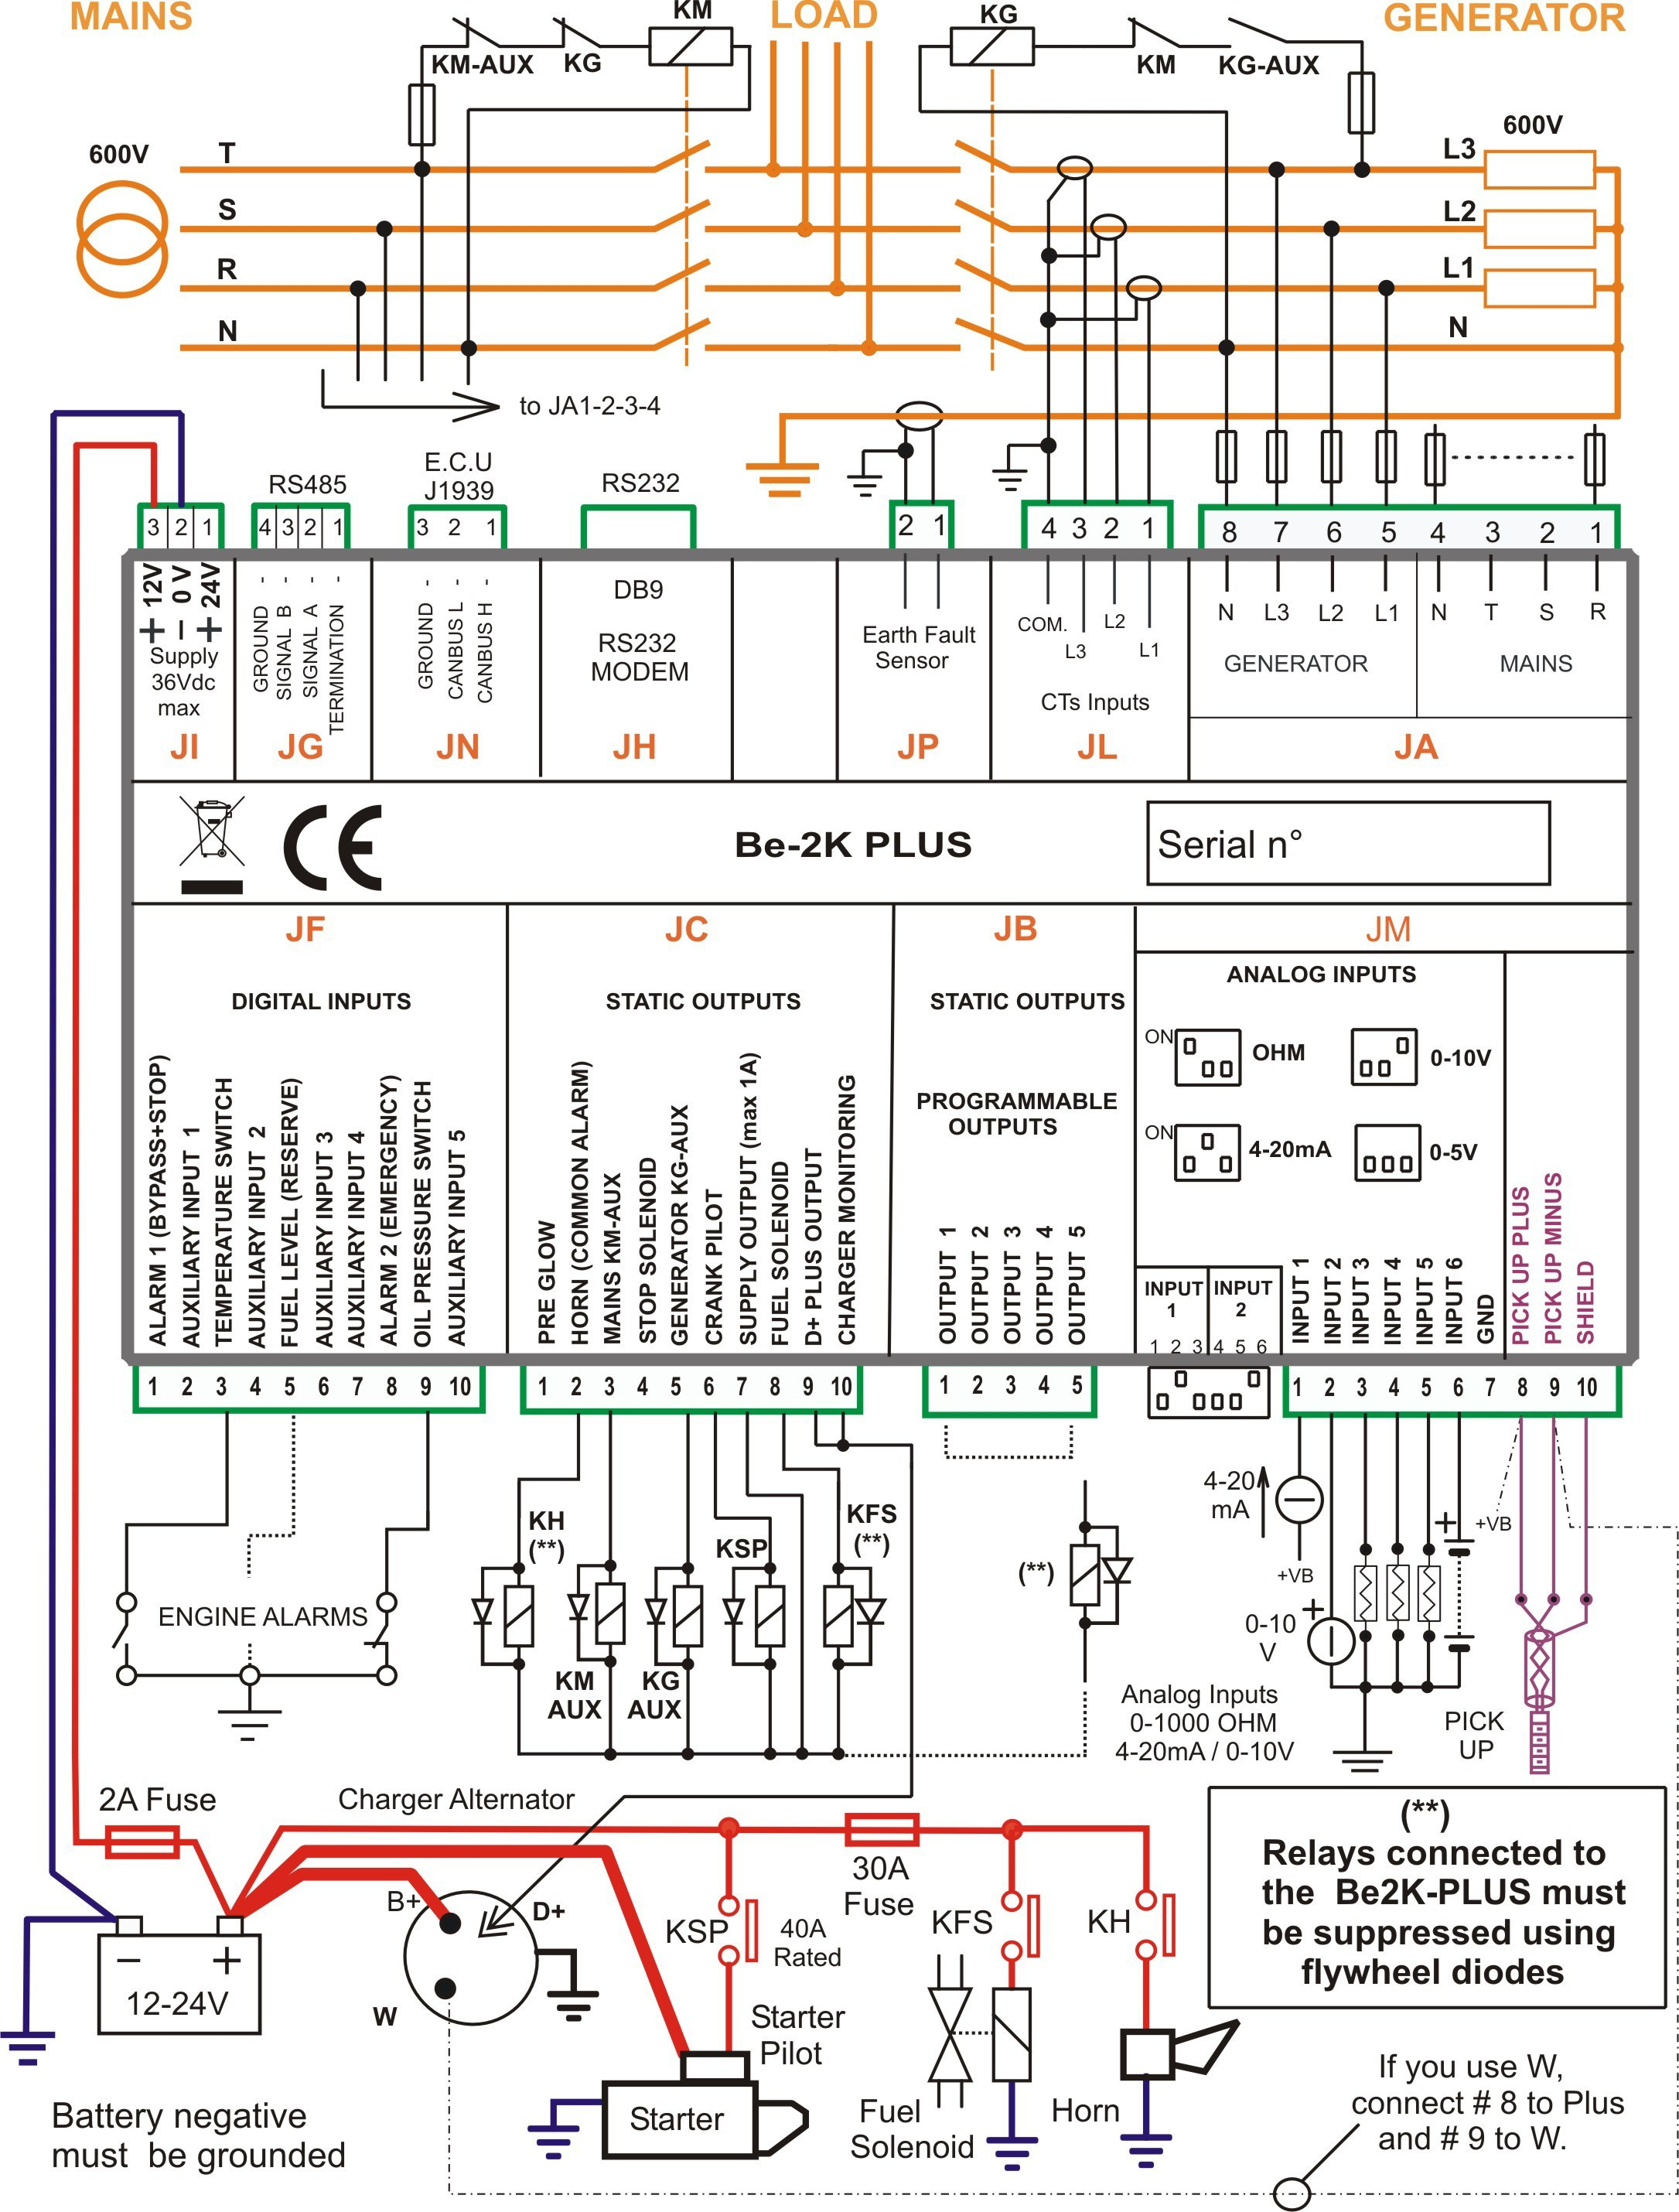 onan cck generator diagram wiring diagram databaseonan cck wiring diagram wiring diagrams for onan 6 5nh governor onan cck generator diagram